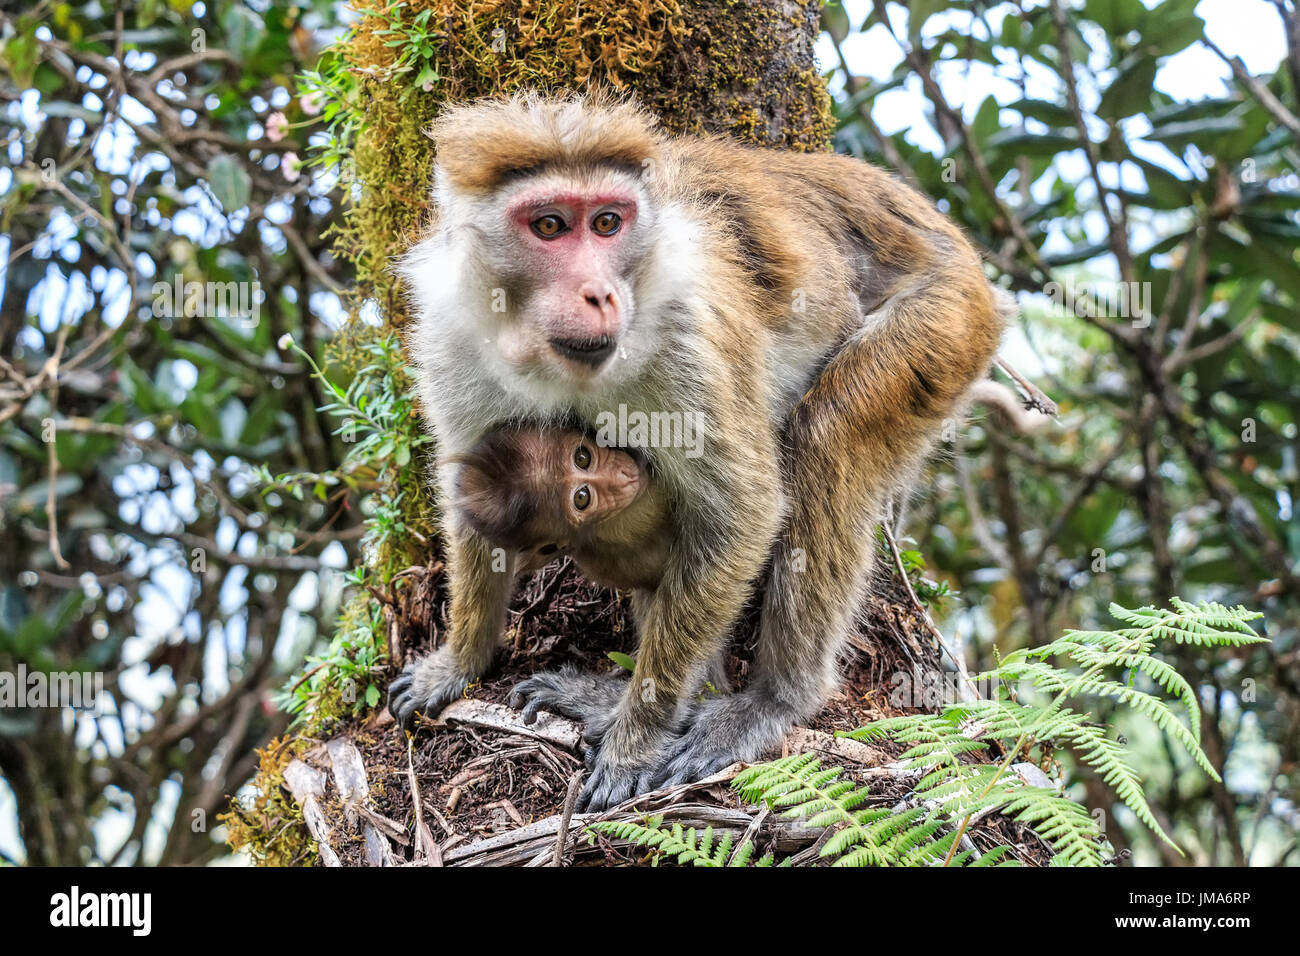 Mother and baby of Sri-Lankan toque macaque or Macaca sinica - Stock Image